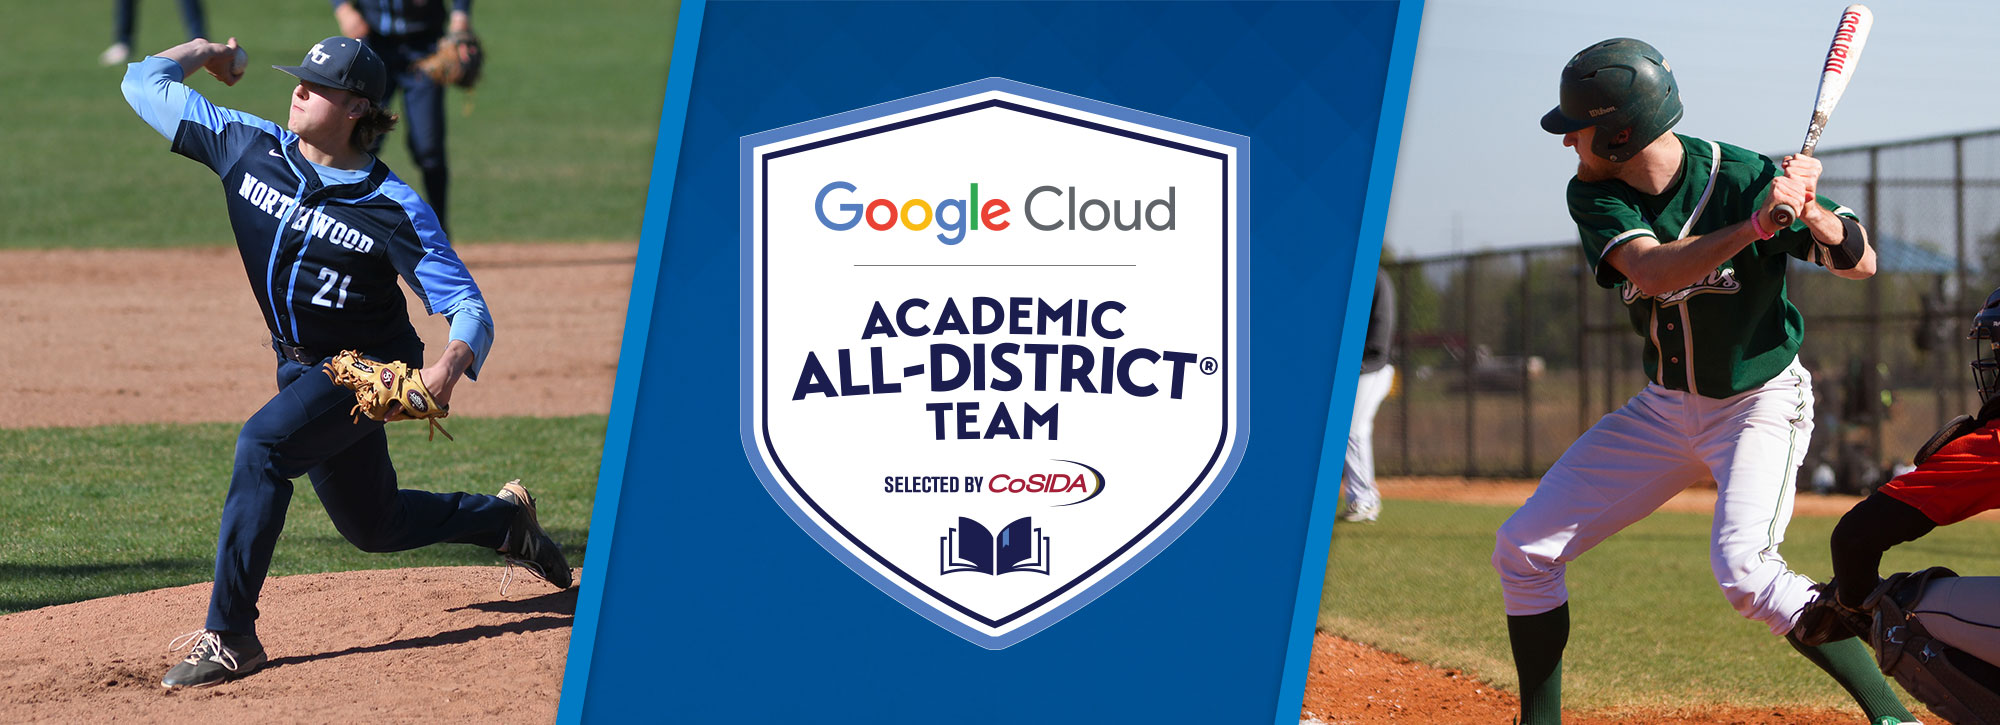 Northwood's Dimitrie, Tiffin's Callihan Named Google Cloud Academic All-District Baseball Honorees